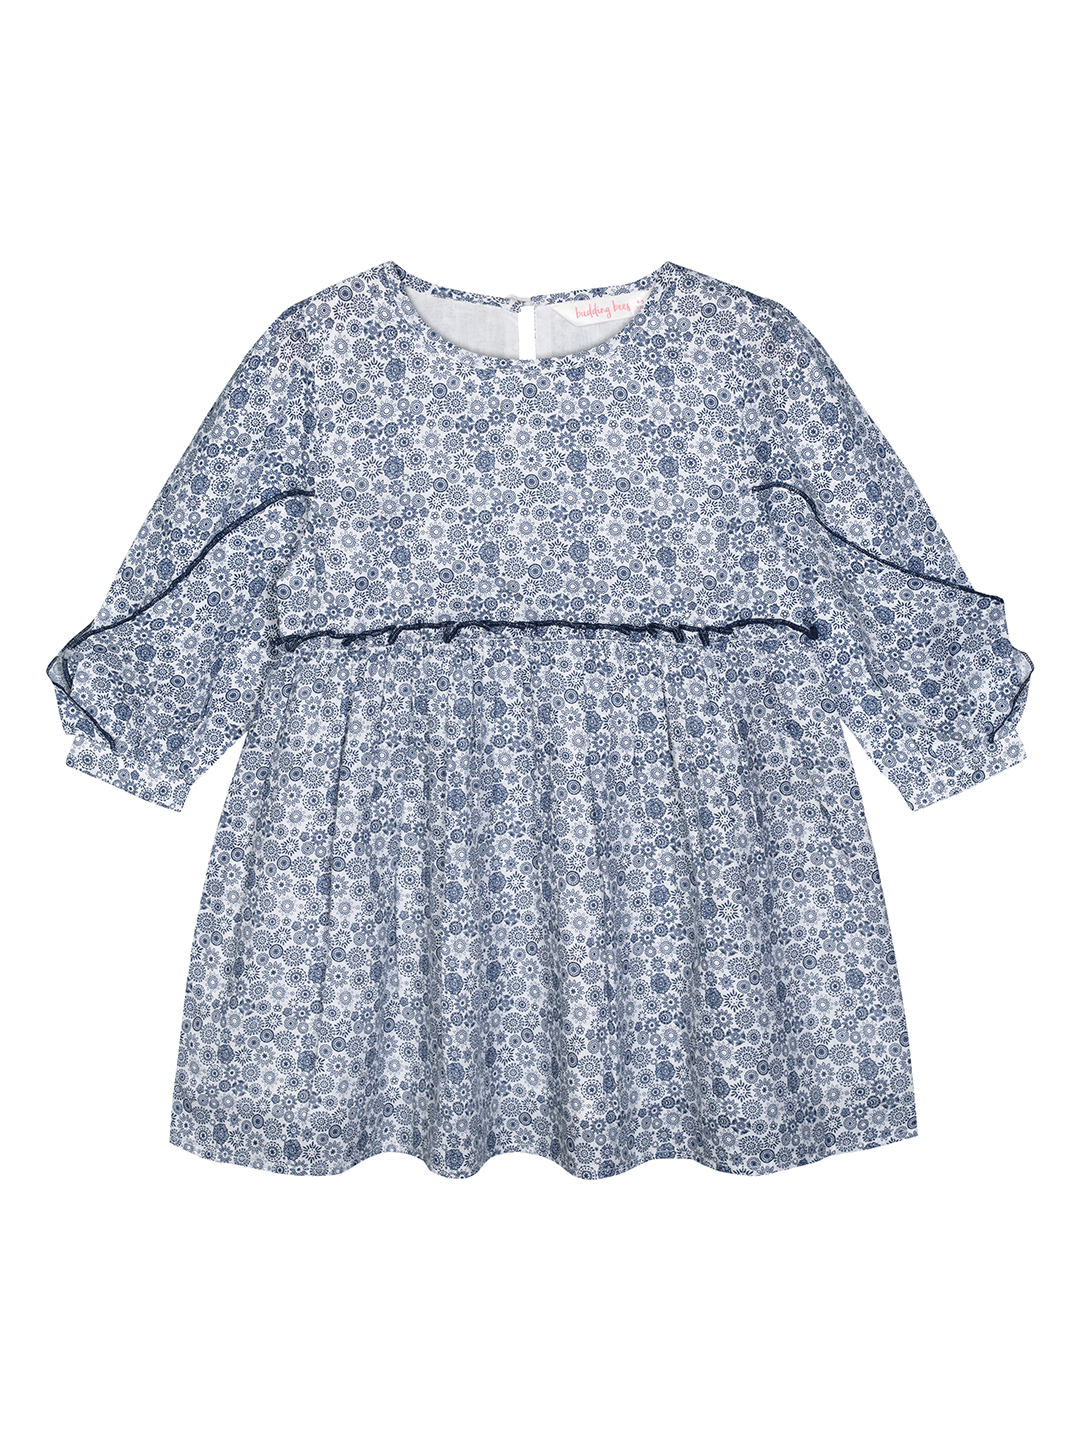 Budding Bees | Budding Bees Girls Blue Floral Top